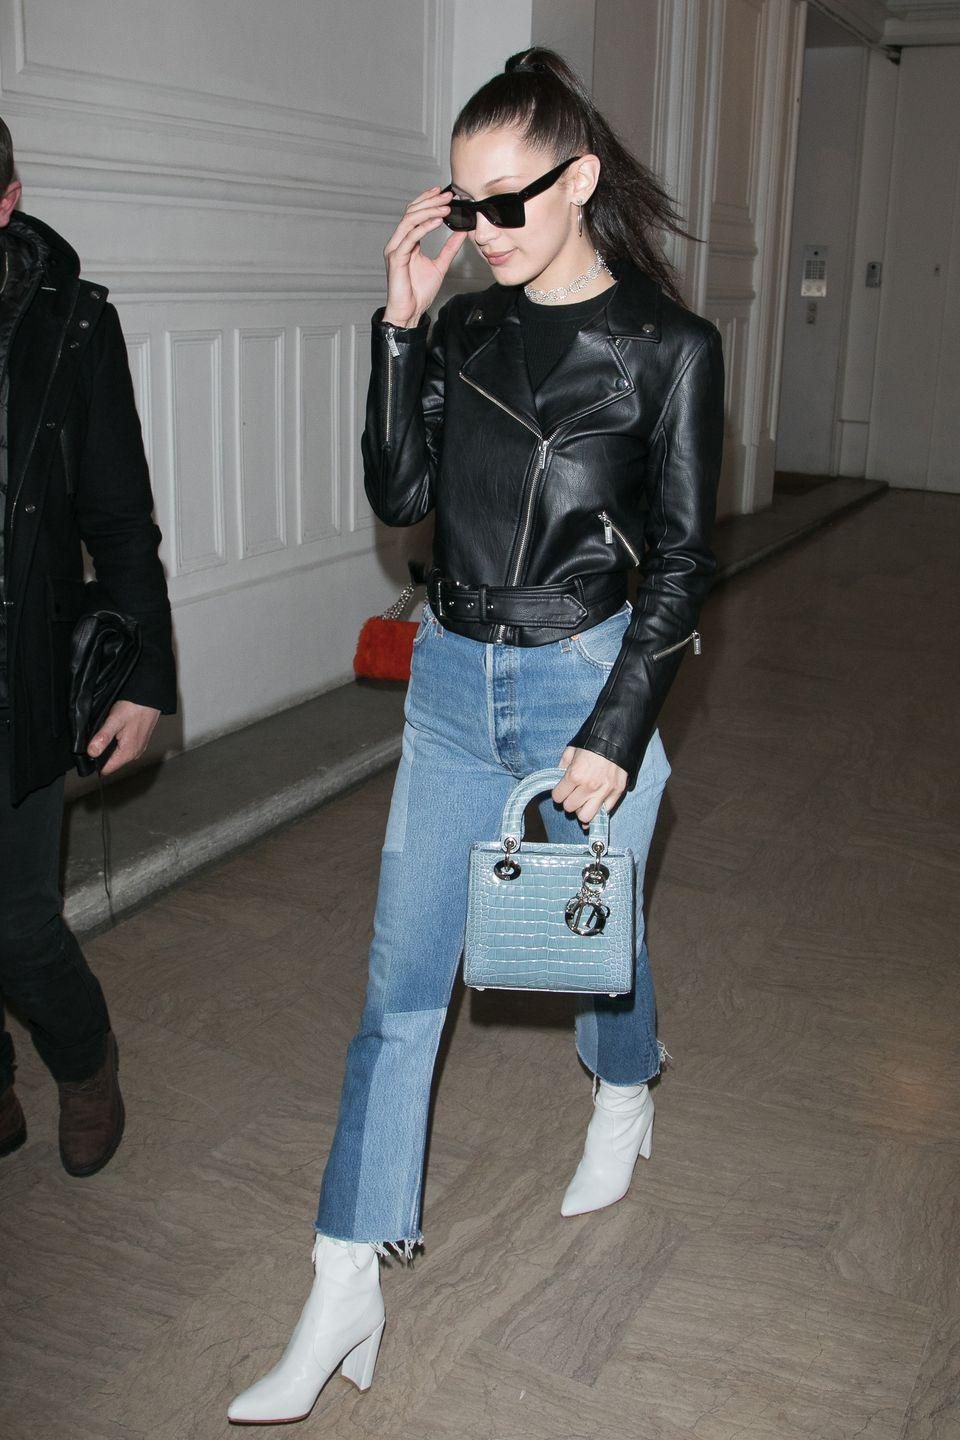 <p>In patched Re/Done jeans, Stuart Weitzman white boots, a baby blue Dior handbag, leather jacket, jeweled choker, silver hoop earrings and Céline sunglasses while out in Paris.</p>